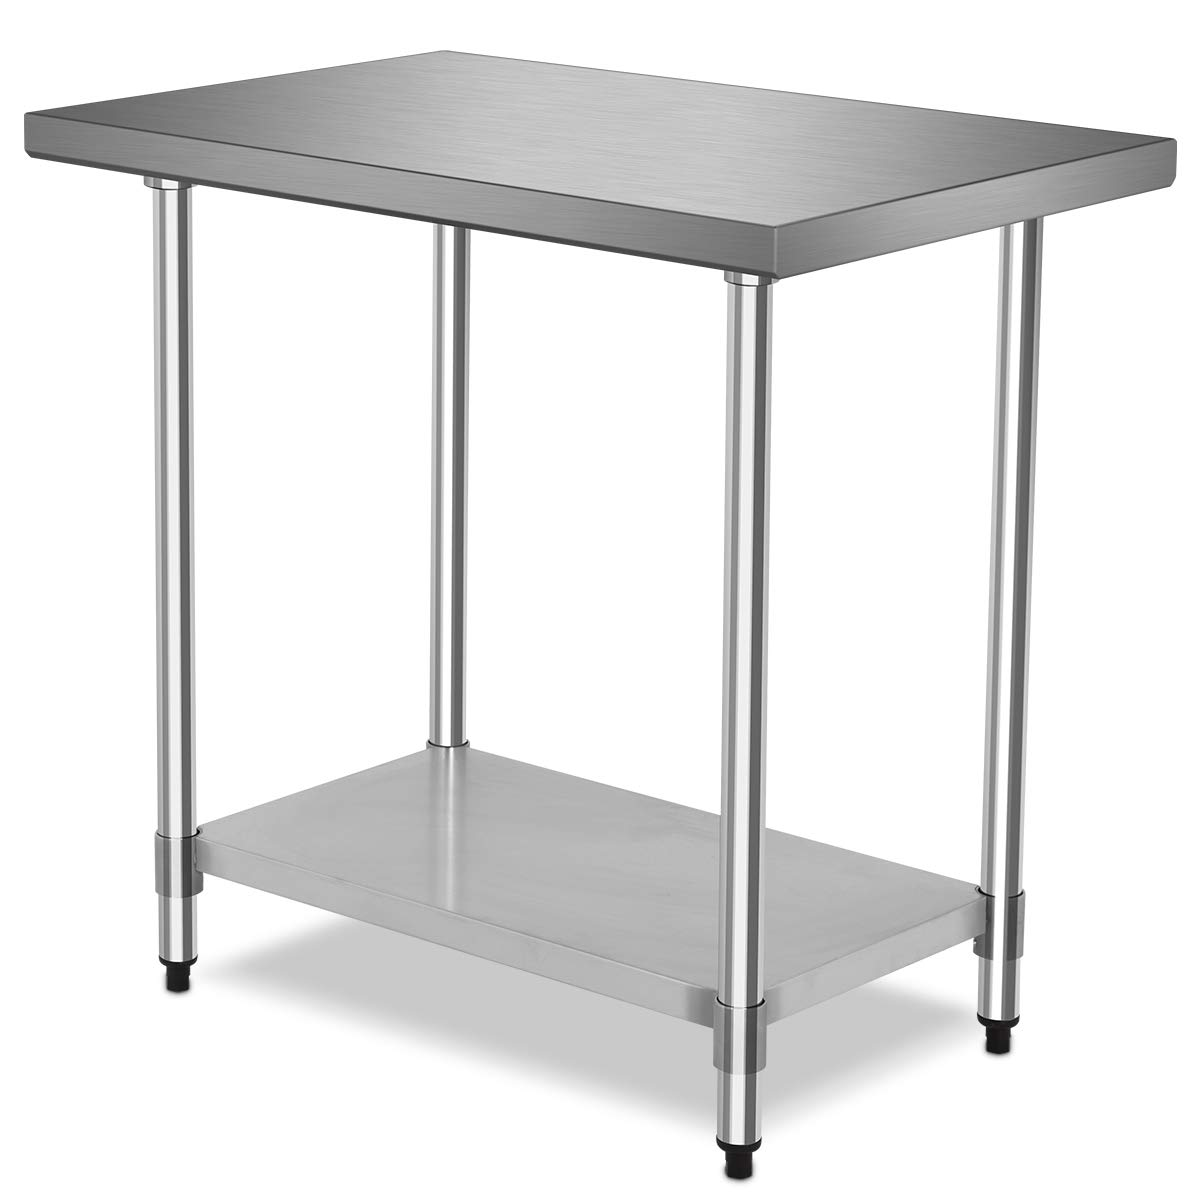 Giantex 24'' X 36'' Stainless Steel Commercial Kitchen Work Food Prep Table